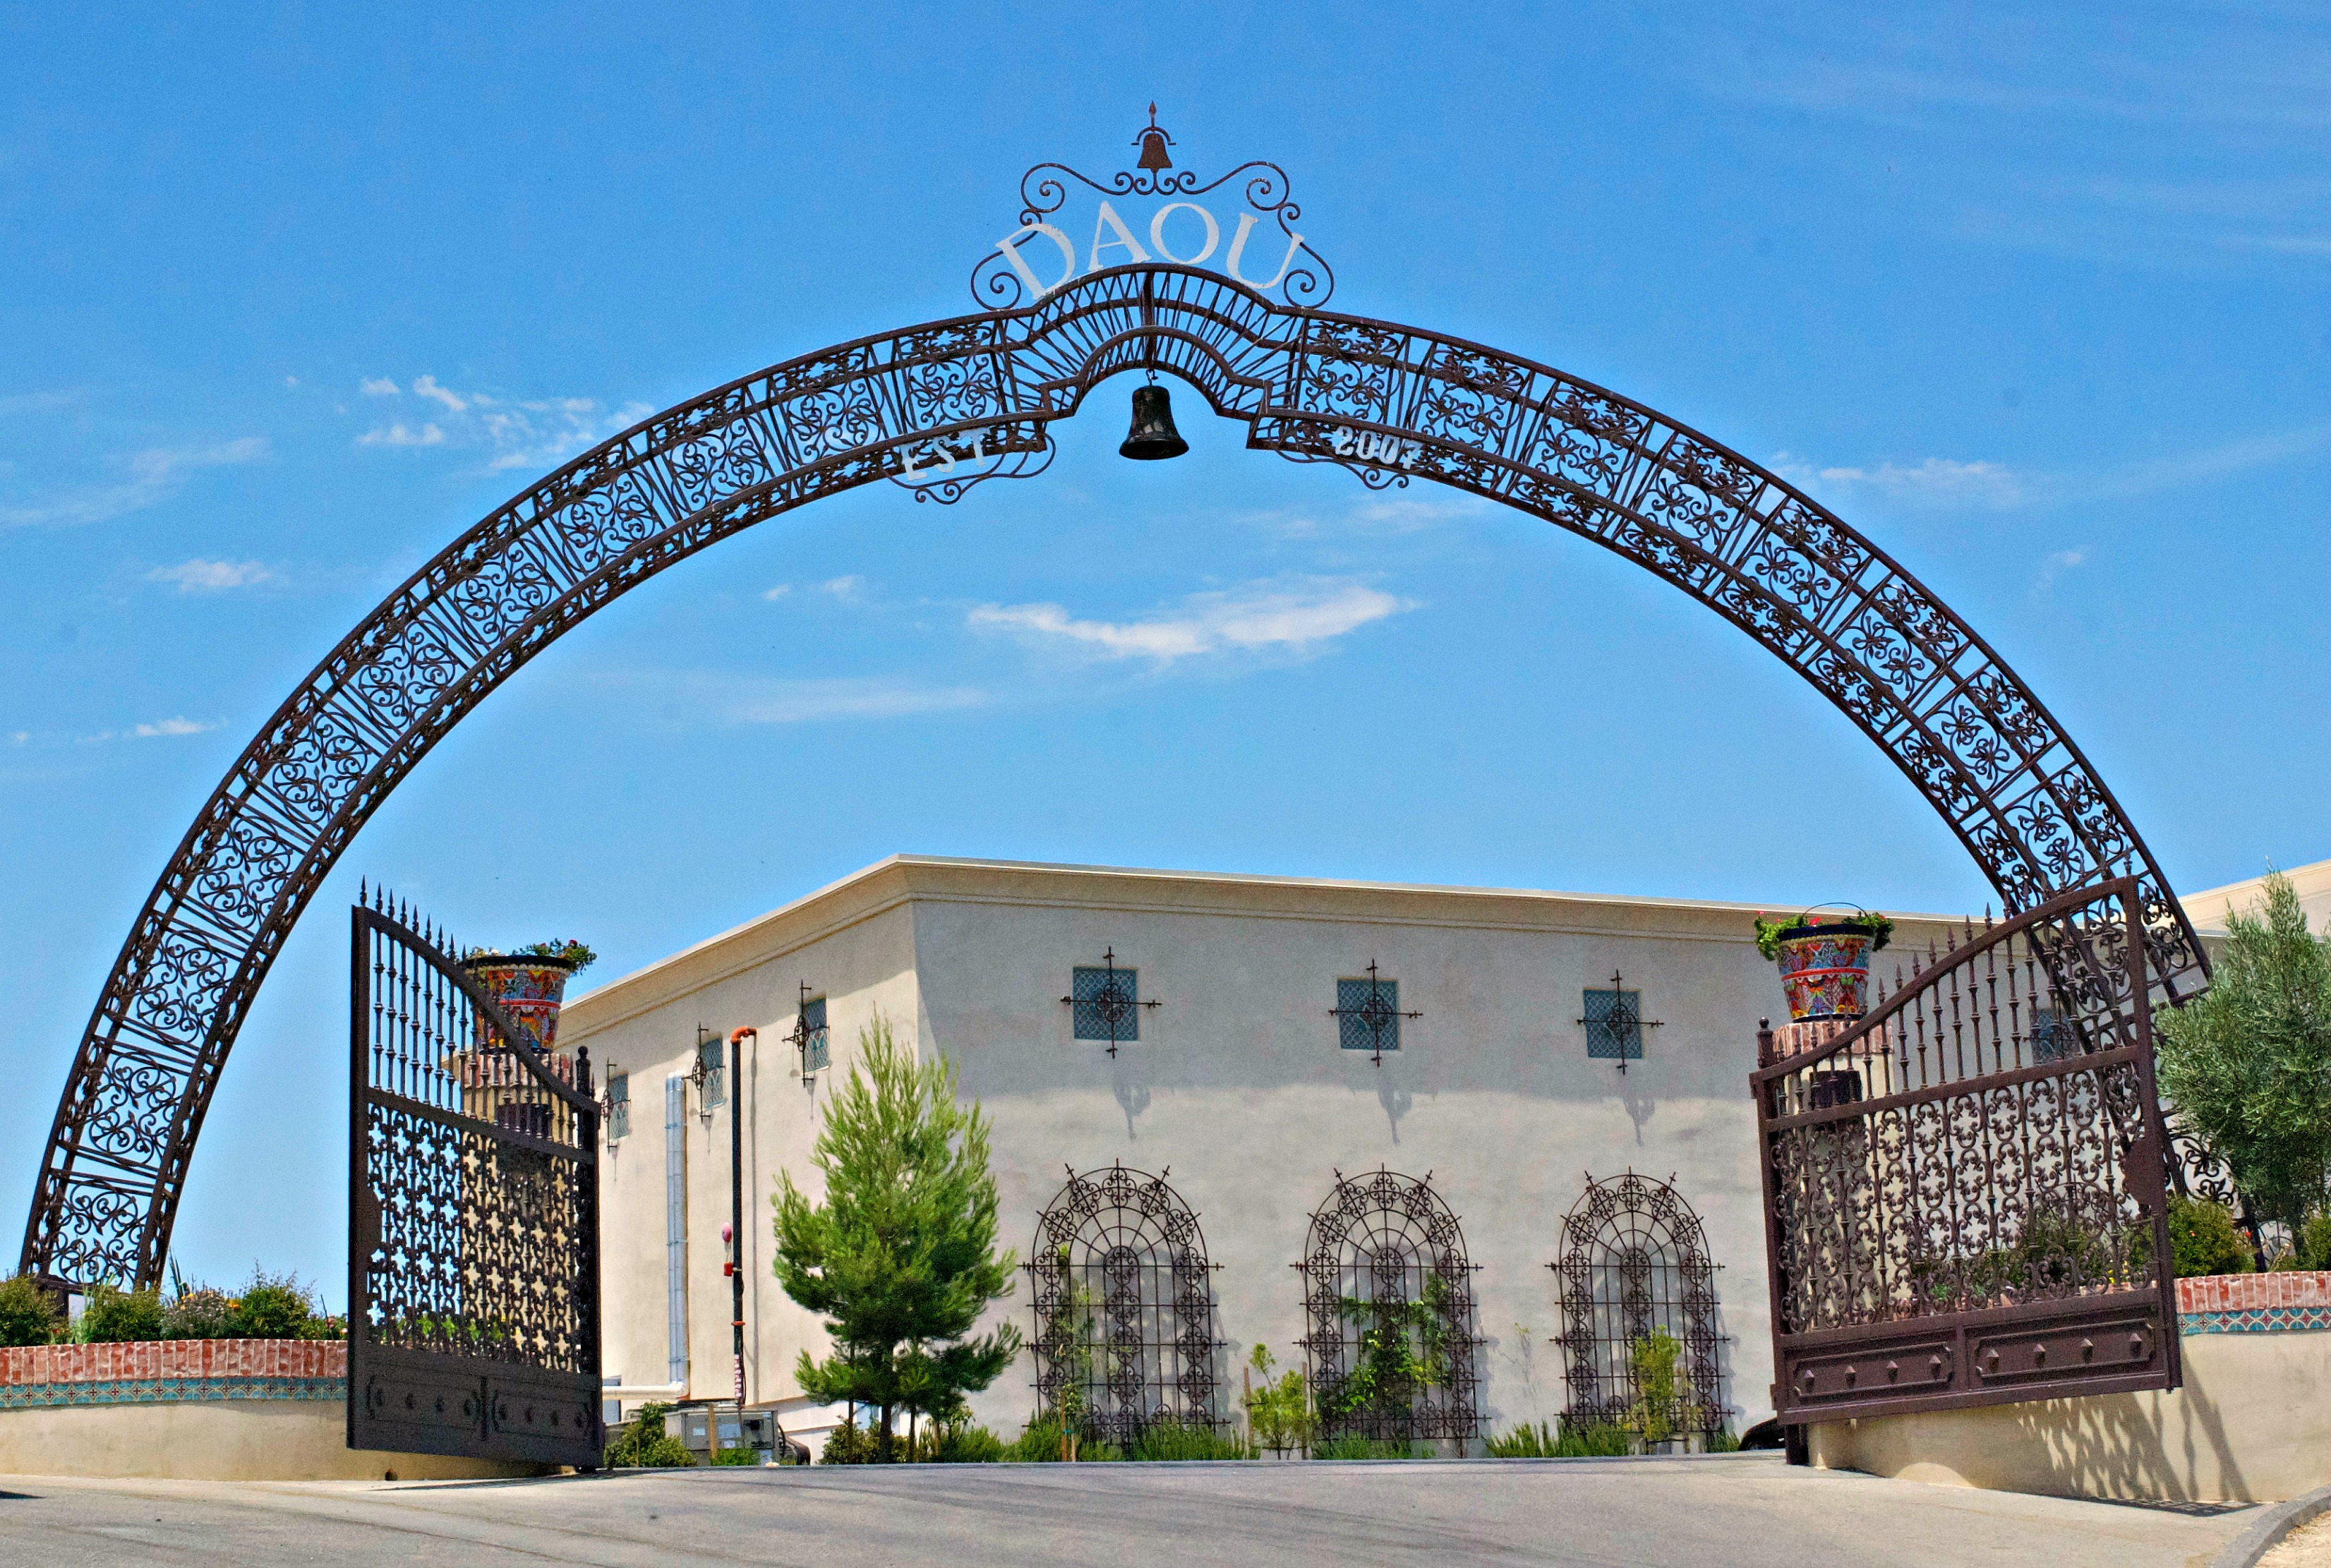 Daou Winery entrance, paso robles